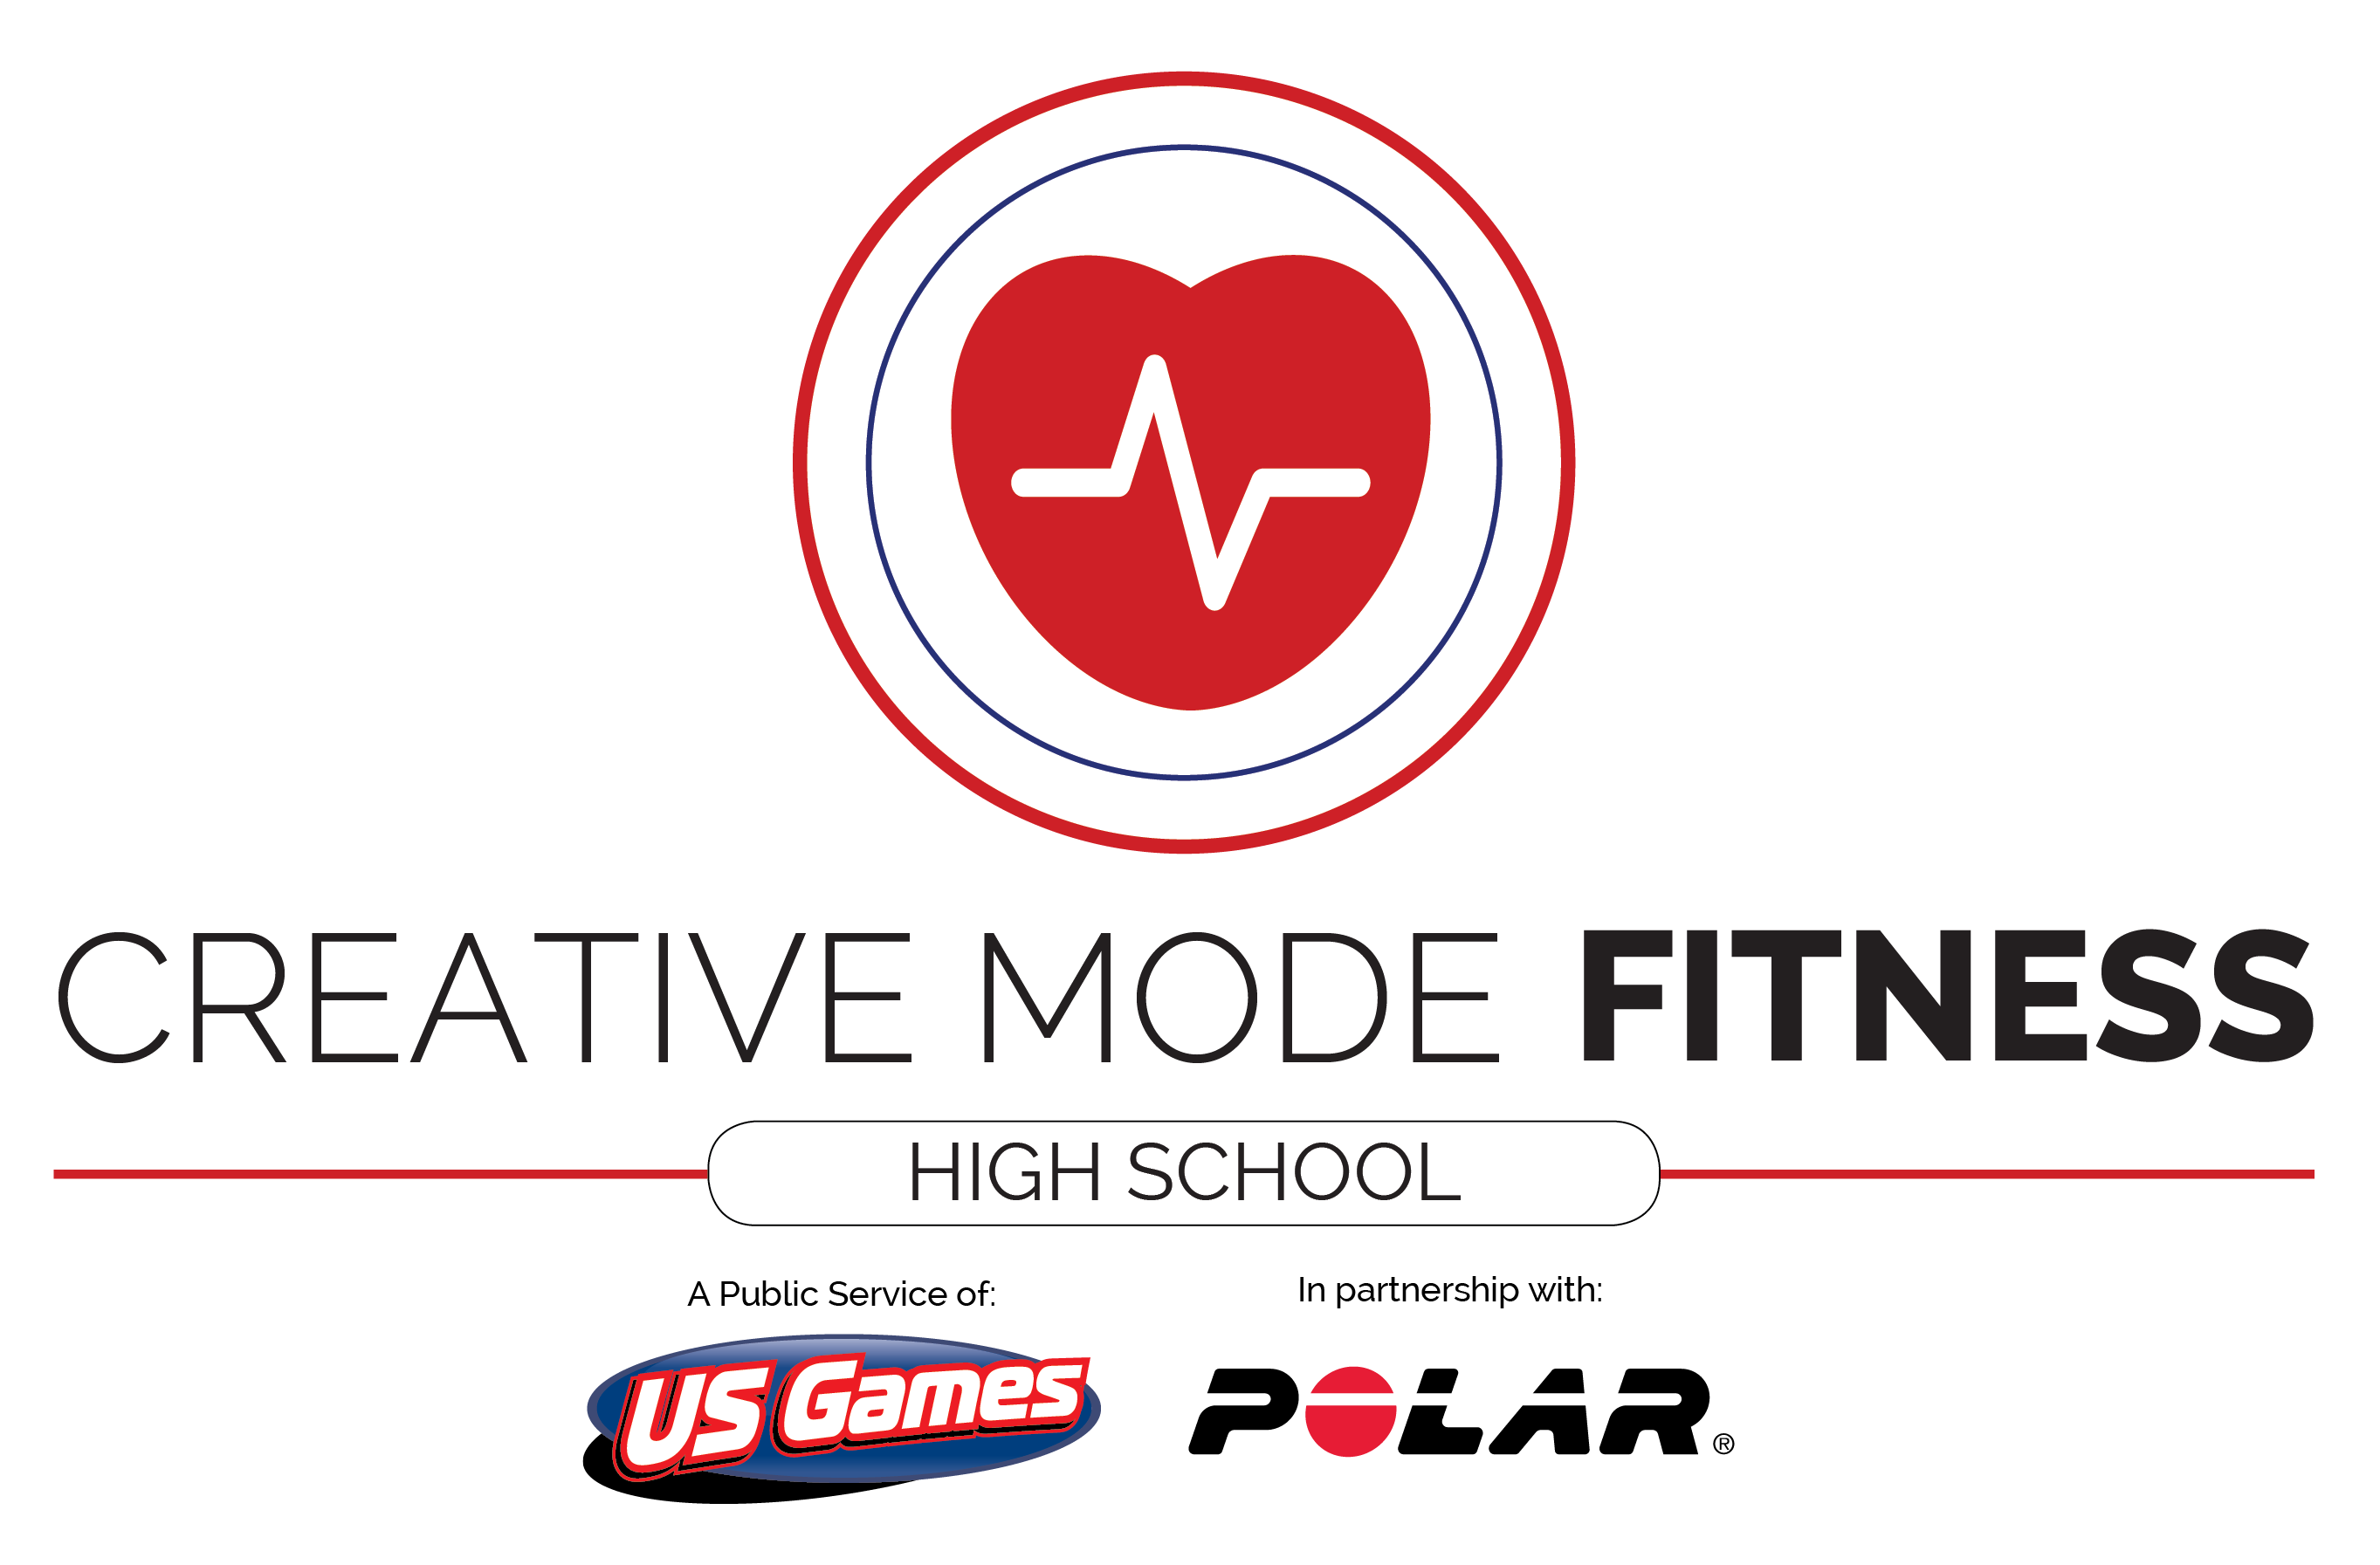 Creative Mode Fitness(High School)